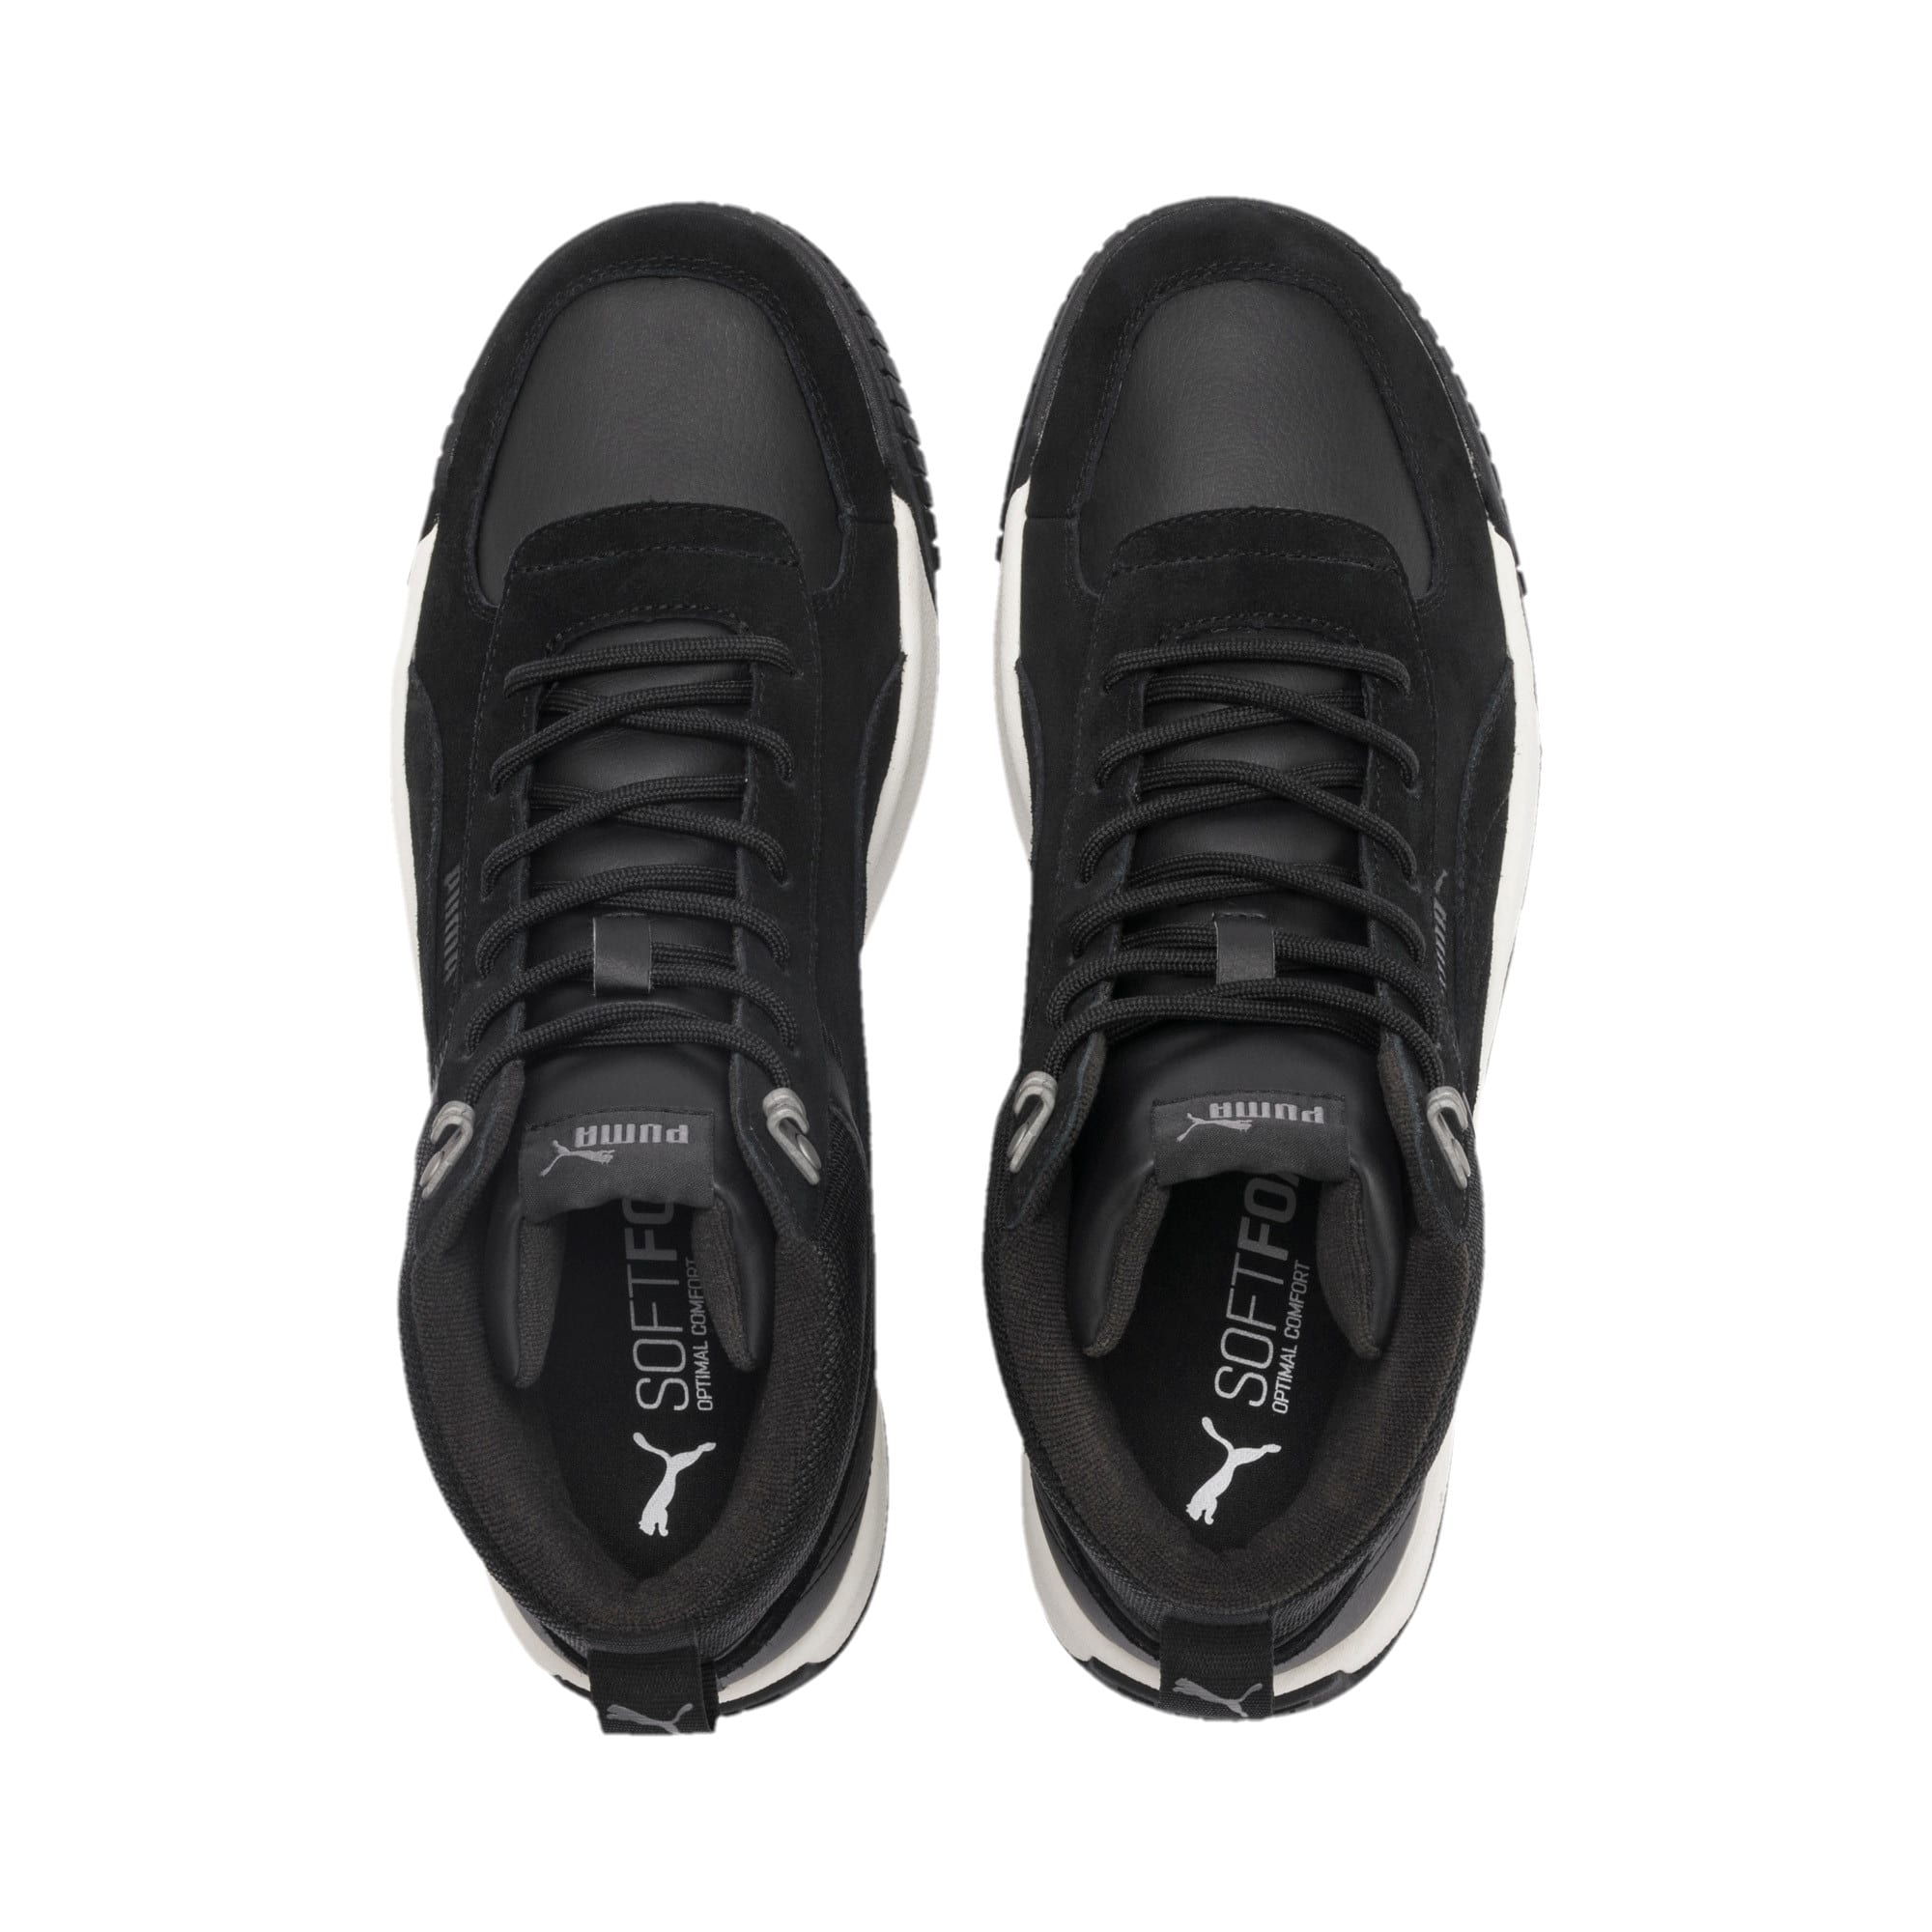 Thumbnail 7 of Basket bottine Tarrenz, Puma Black-Whisper White, medium